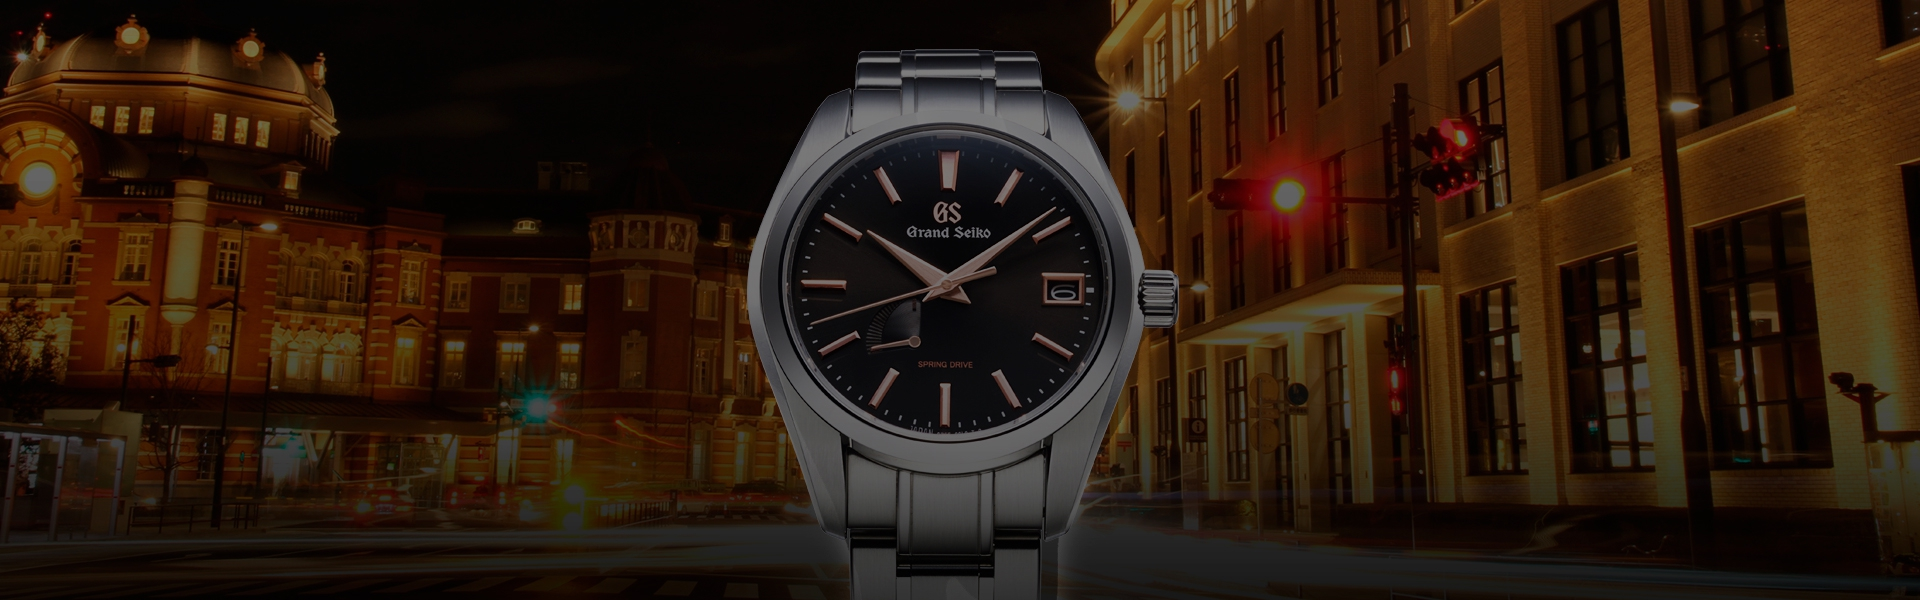 Grand Seiko Boutique Limited Edition.